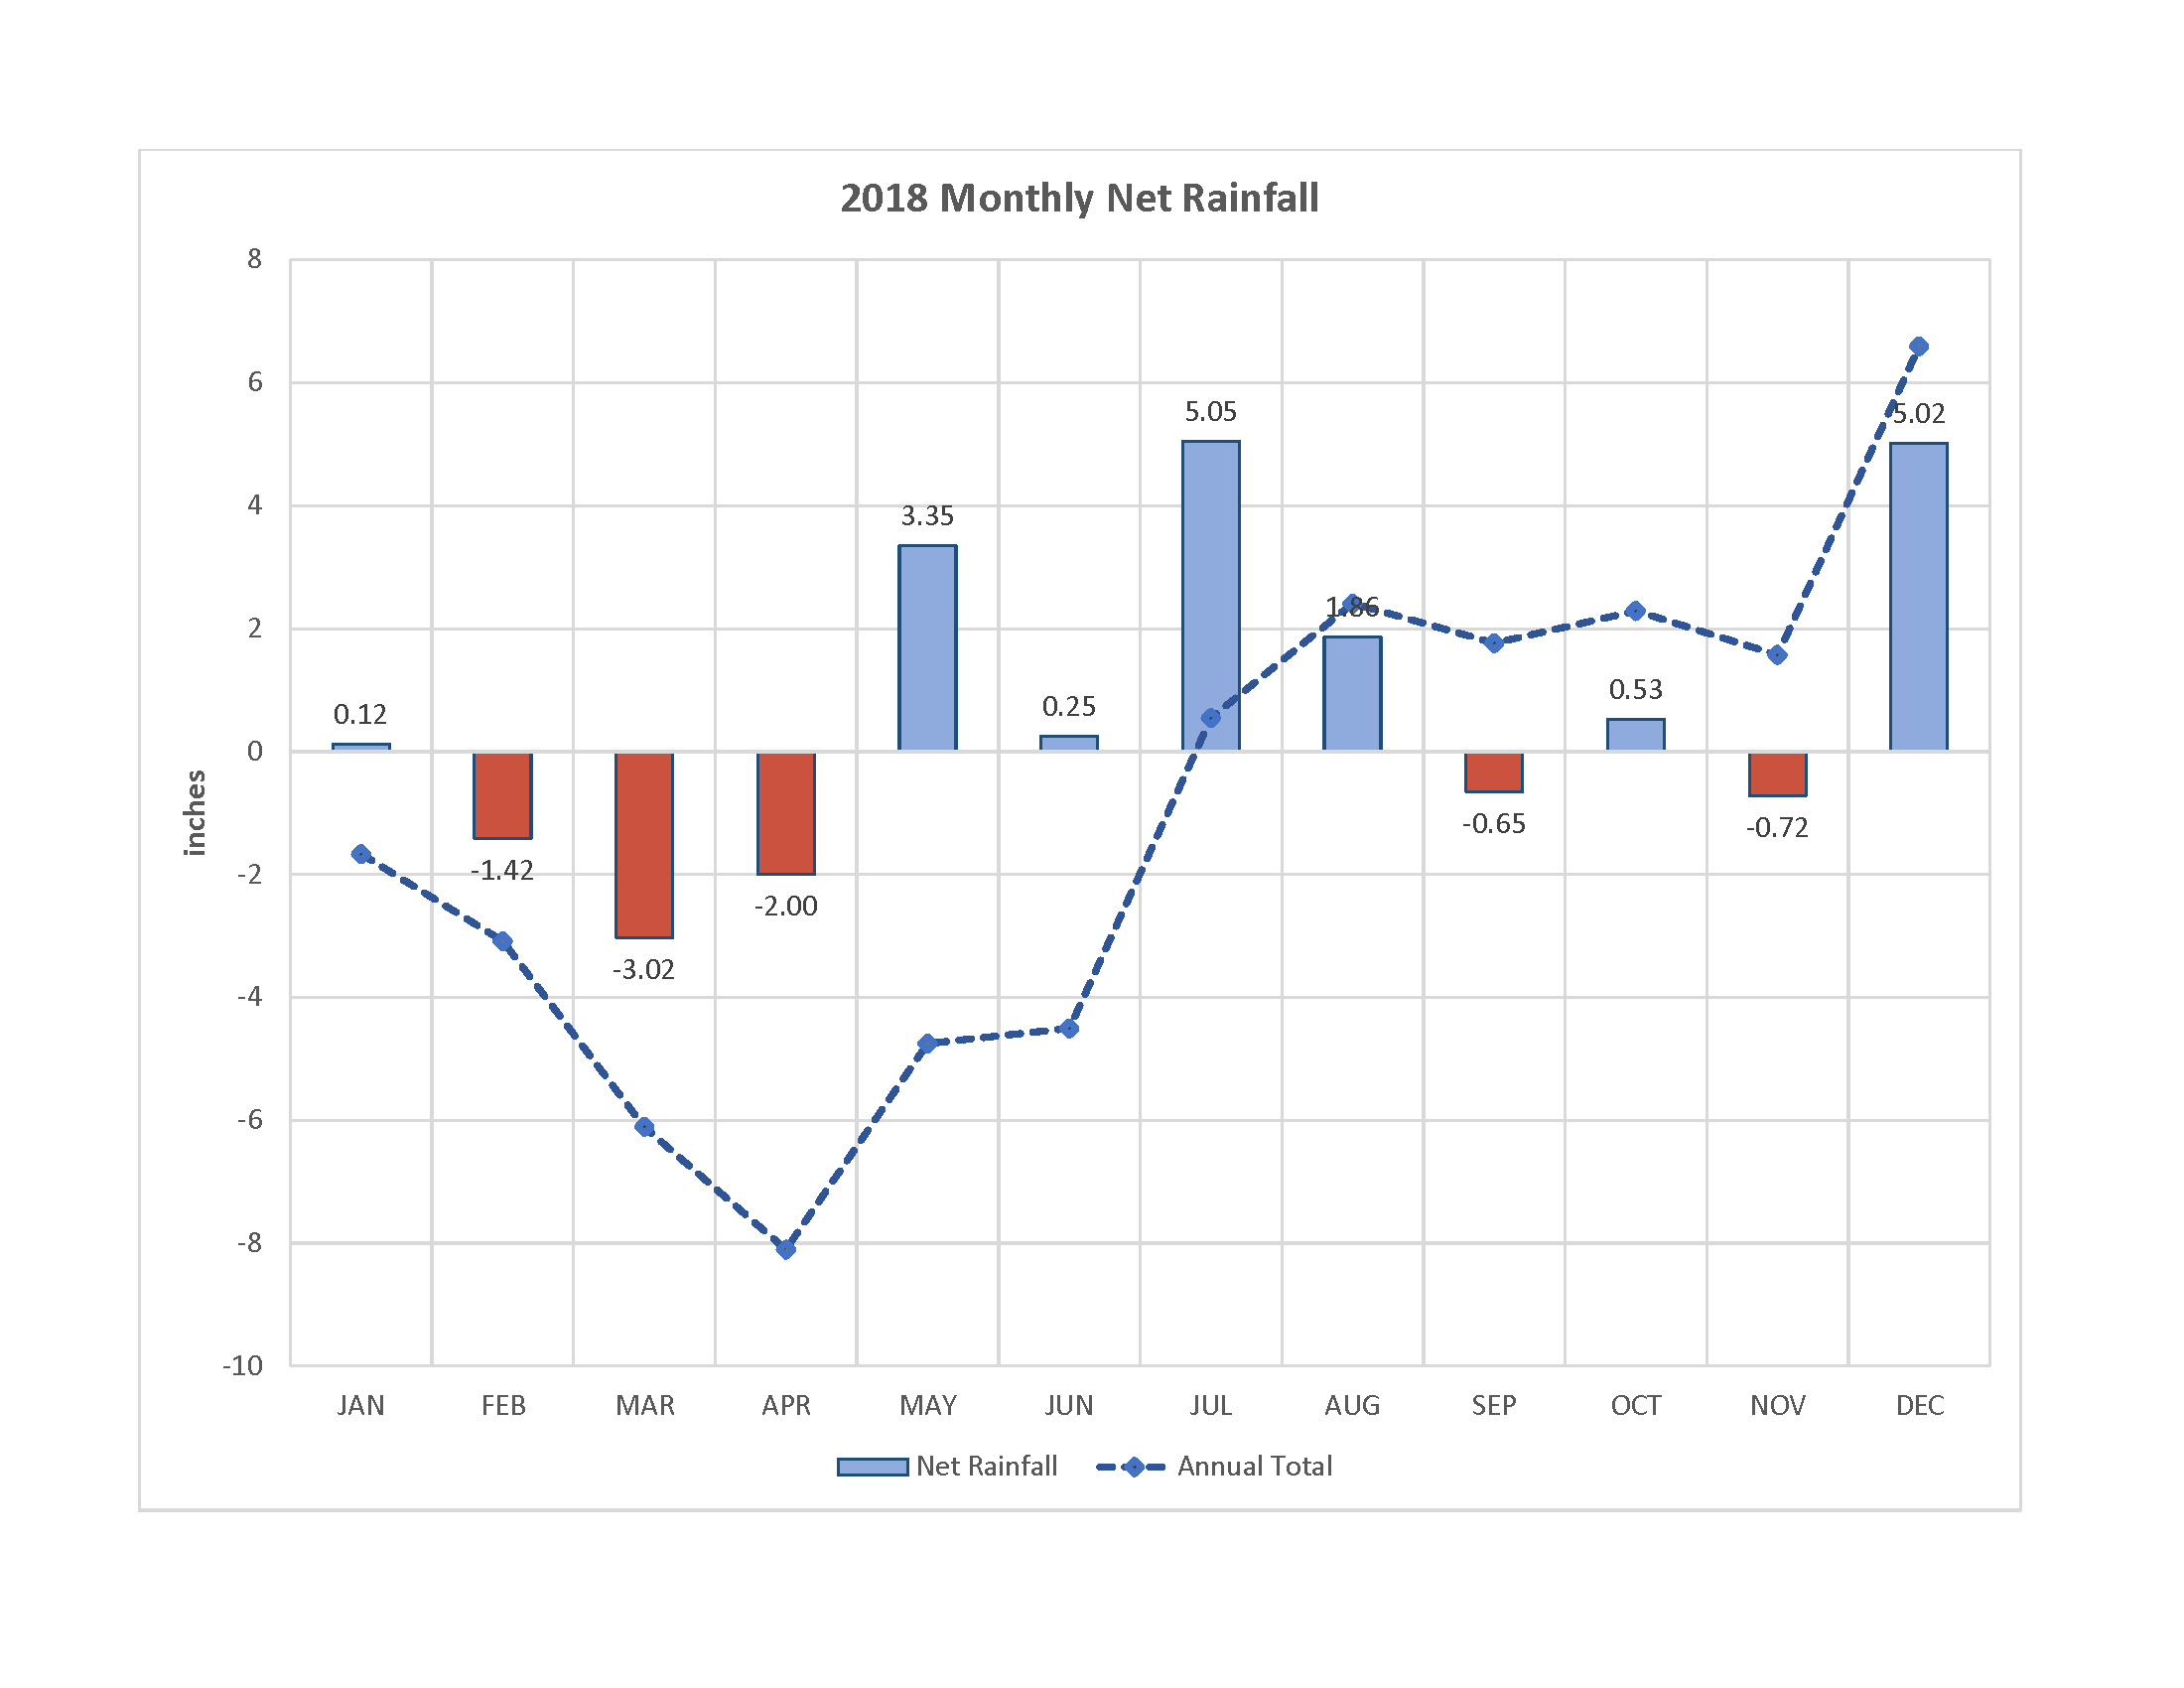 Graph of 2018 Monthly Net Rainfall